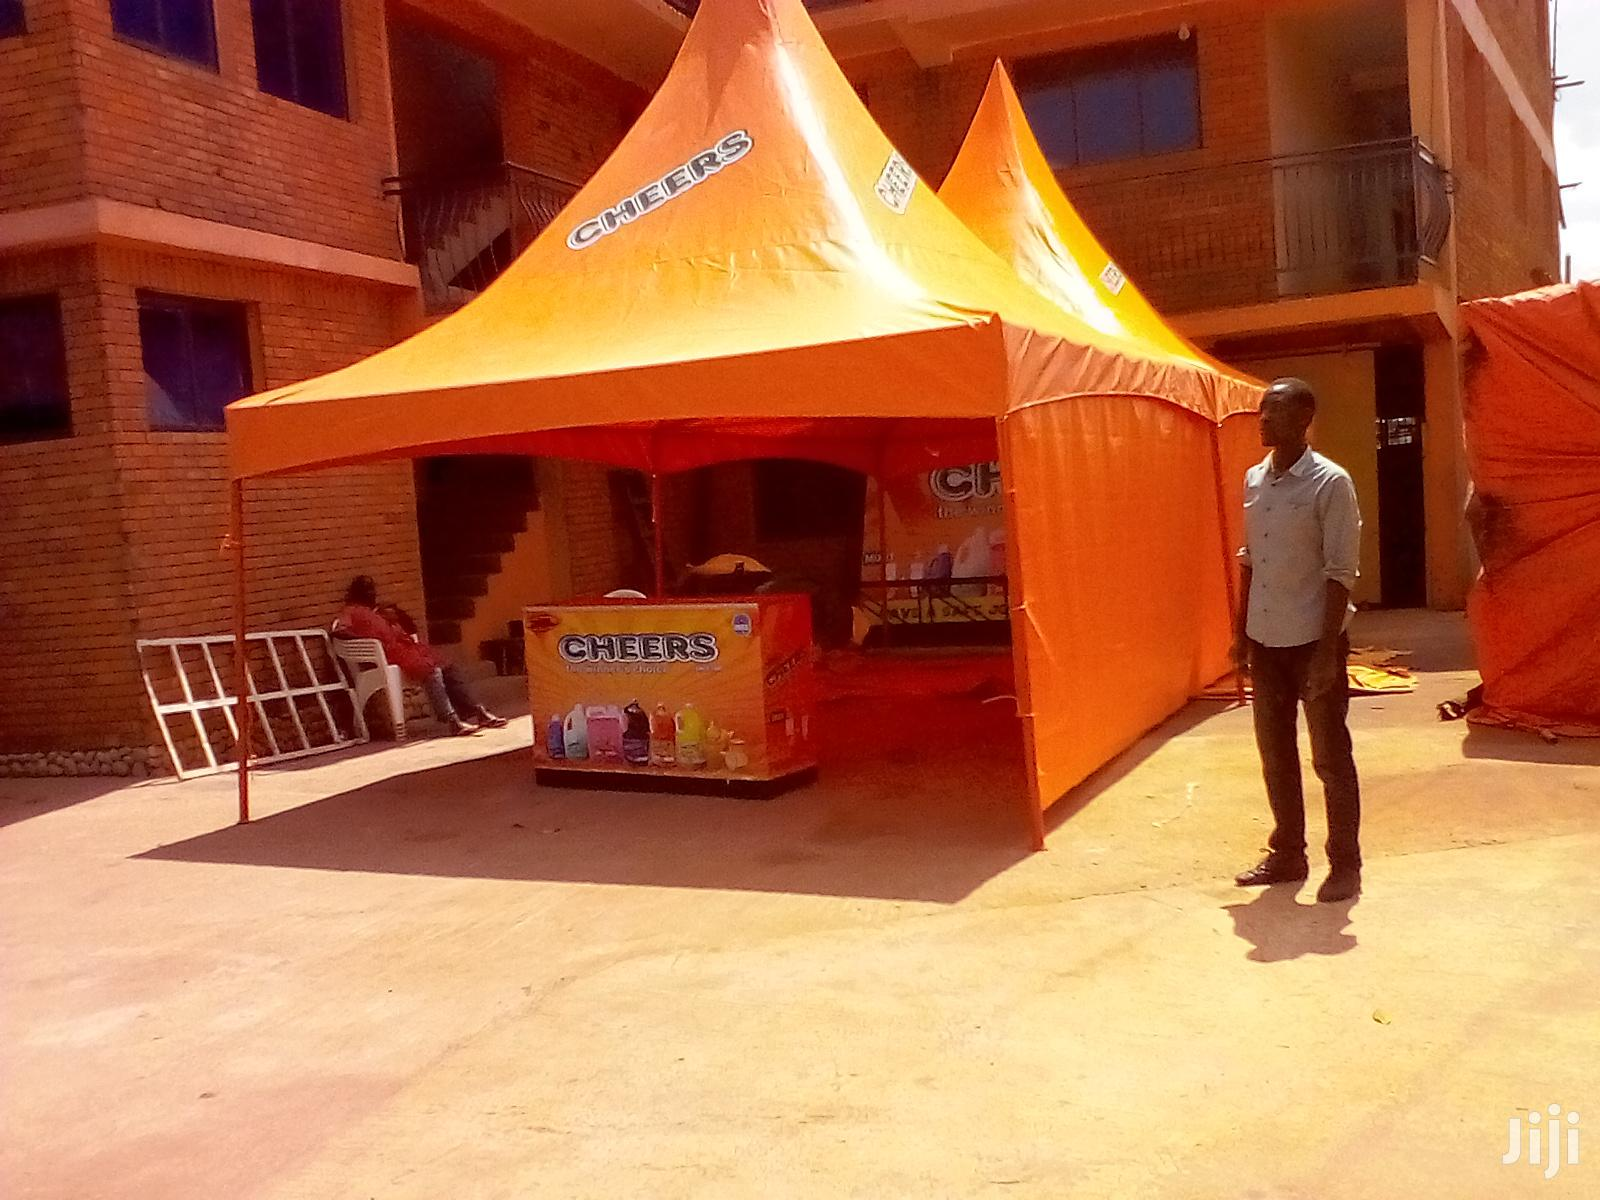 100 Seater Tents | Camping Gear for sale in Wakiso, Uganda